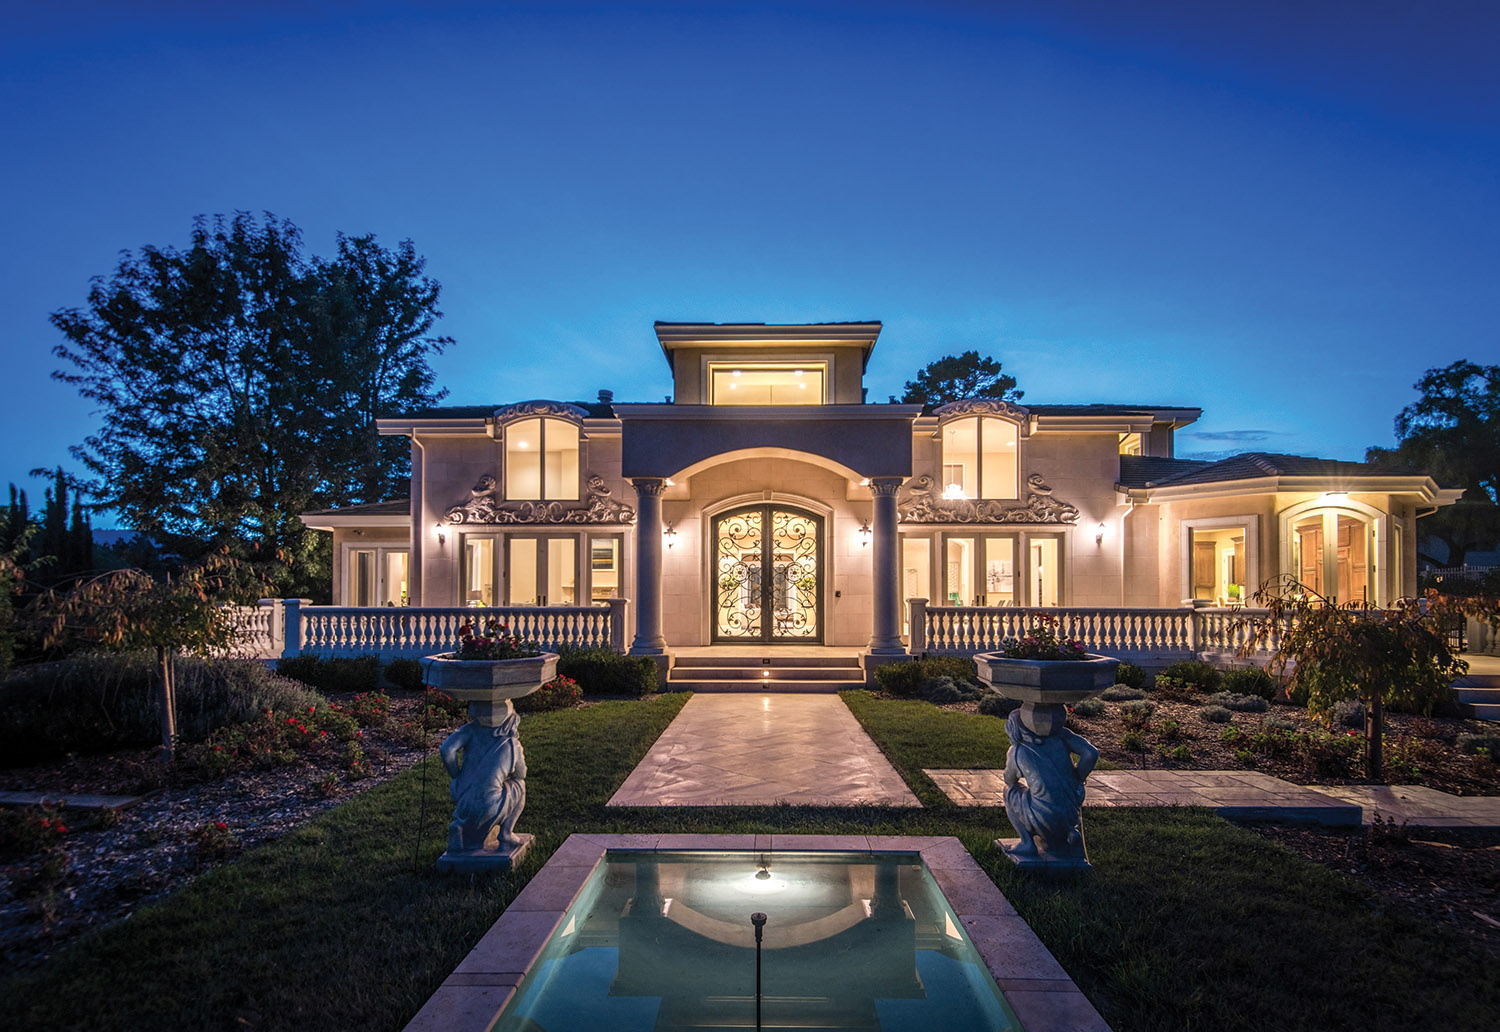 14329 Miranda Way , sale pending with The Campi Group, asking price $8,888,000